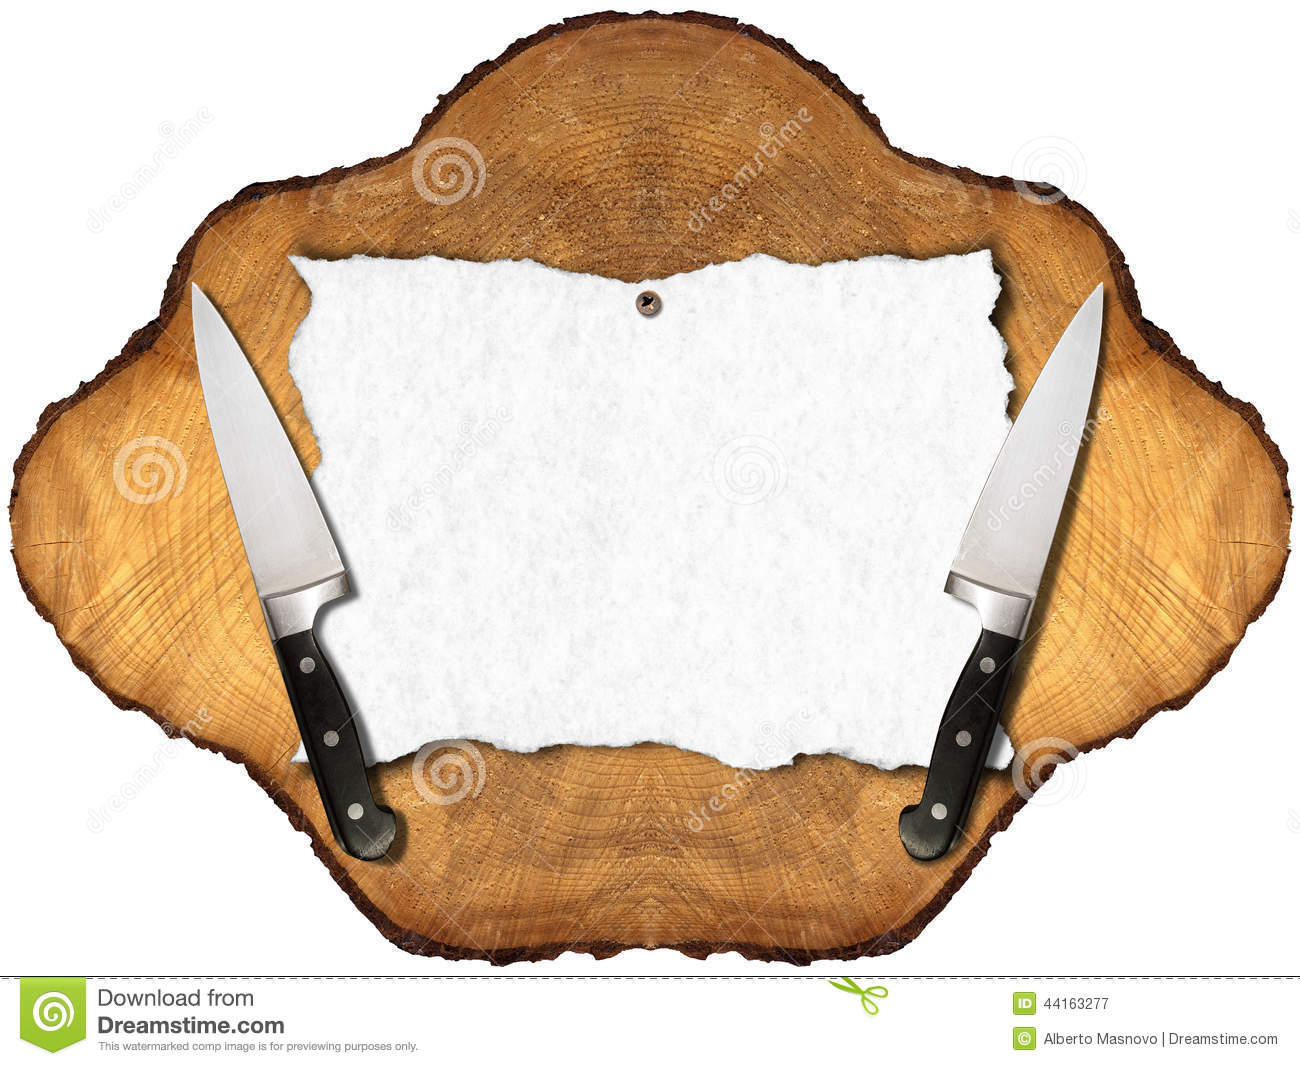 Rustic Menu Background Stock Illustration - Image: 44163277 Table Knife Clipart